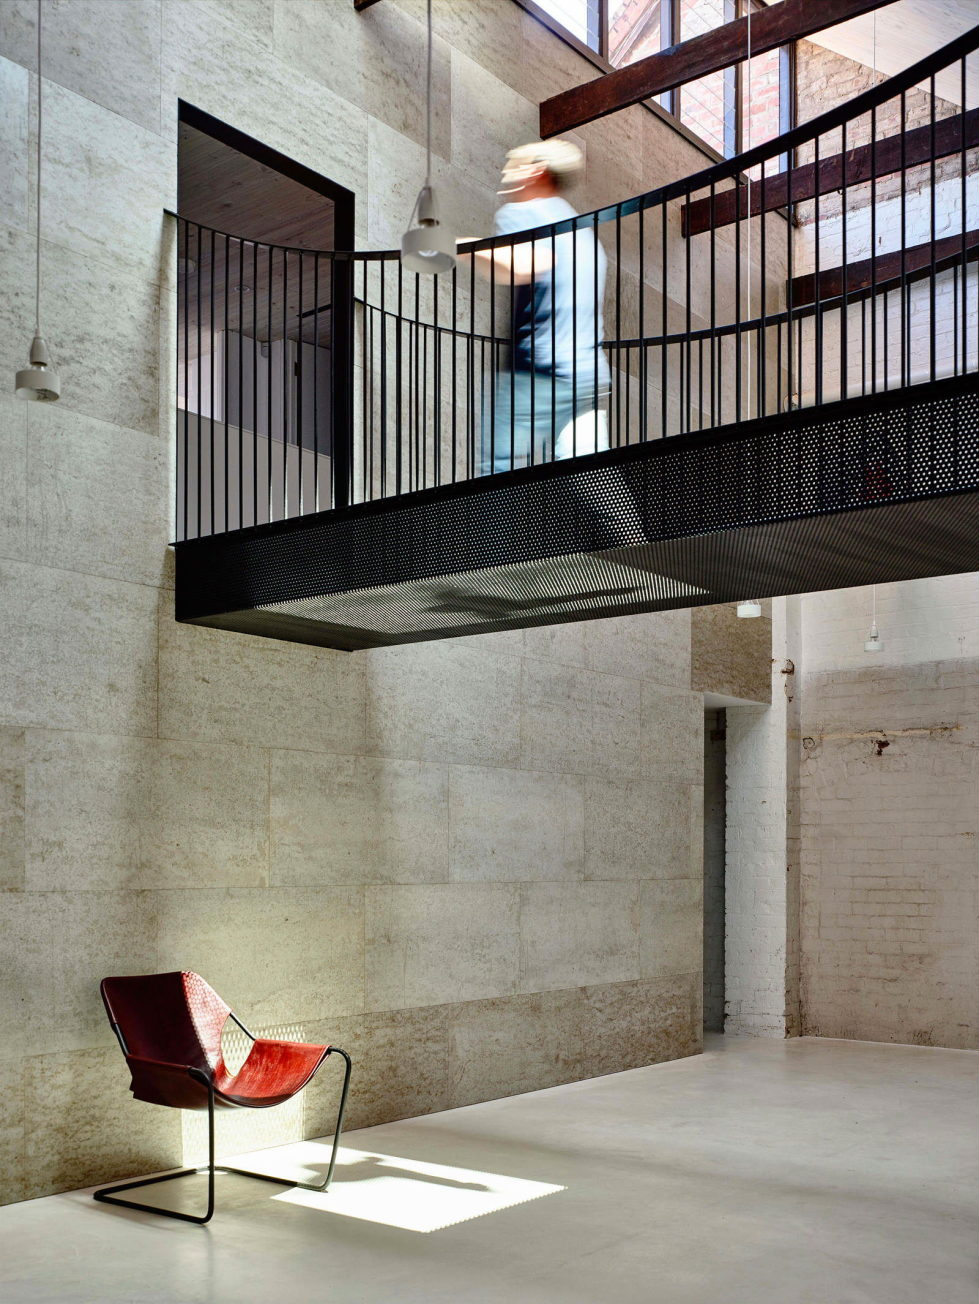 fitzroy-the-loft-in-a-former-chocolate-factory-9